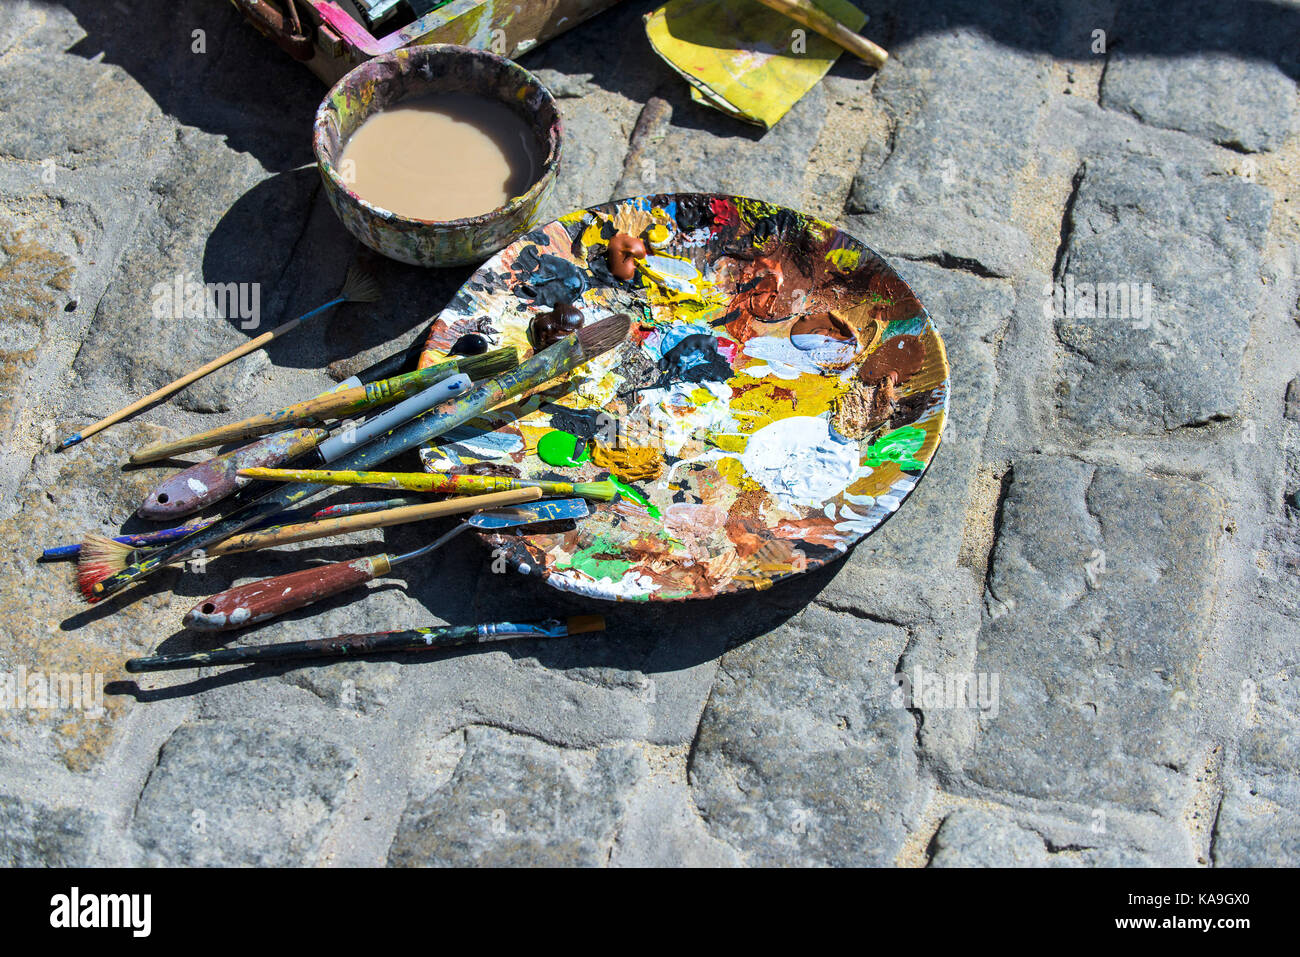 Acrylic paint - a plate used as an artists palette outdoors. - Stock Image